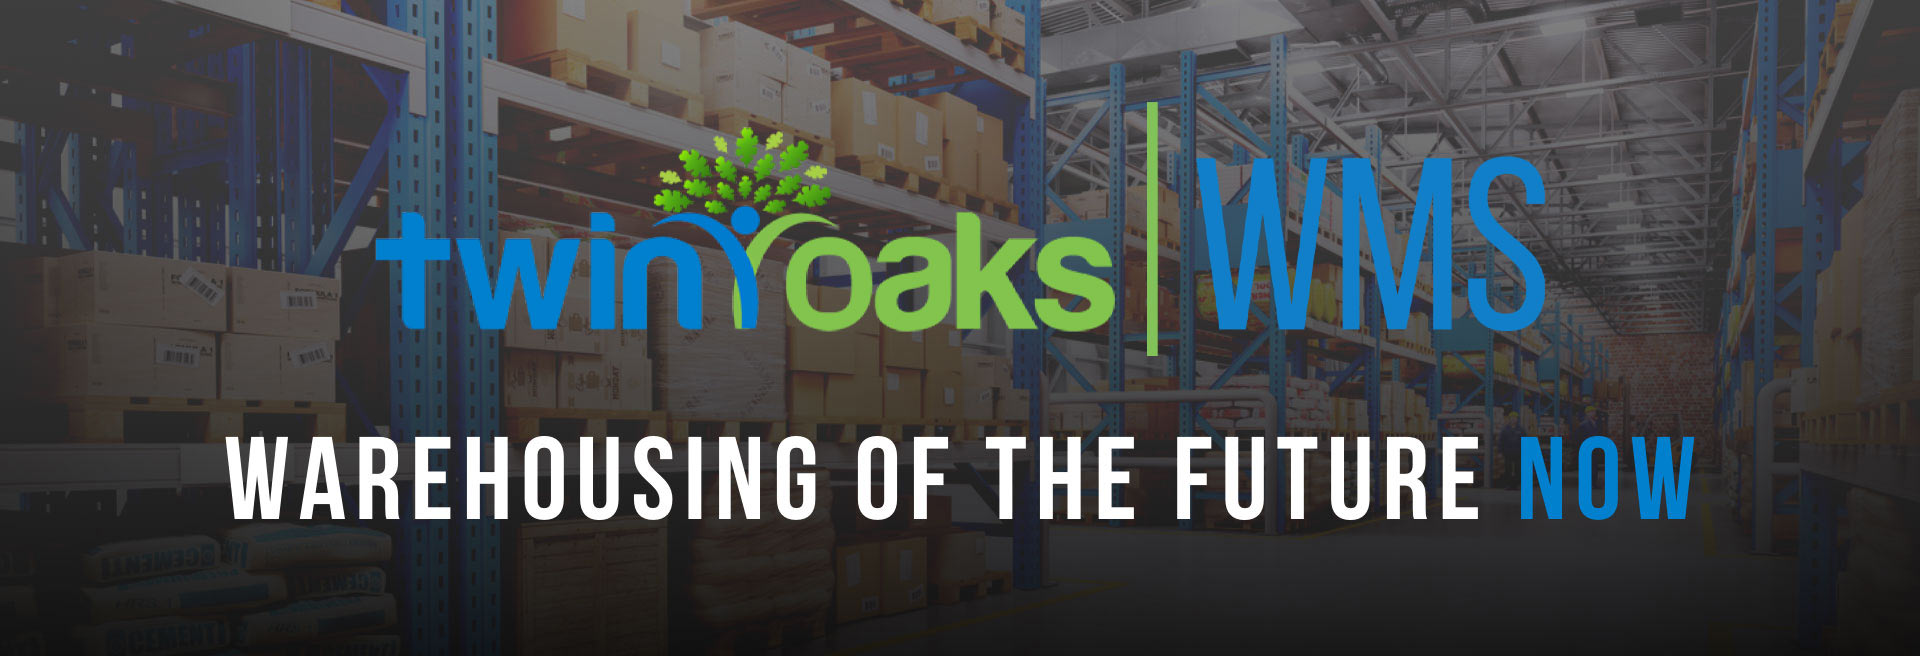 warehouse background with Twin Oaks WMS logo and Warehousing of the Future Now